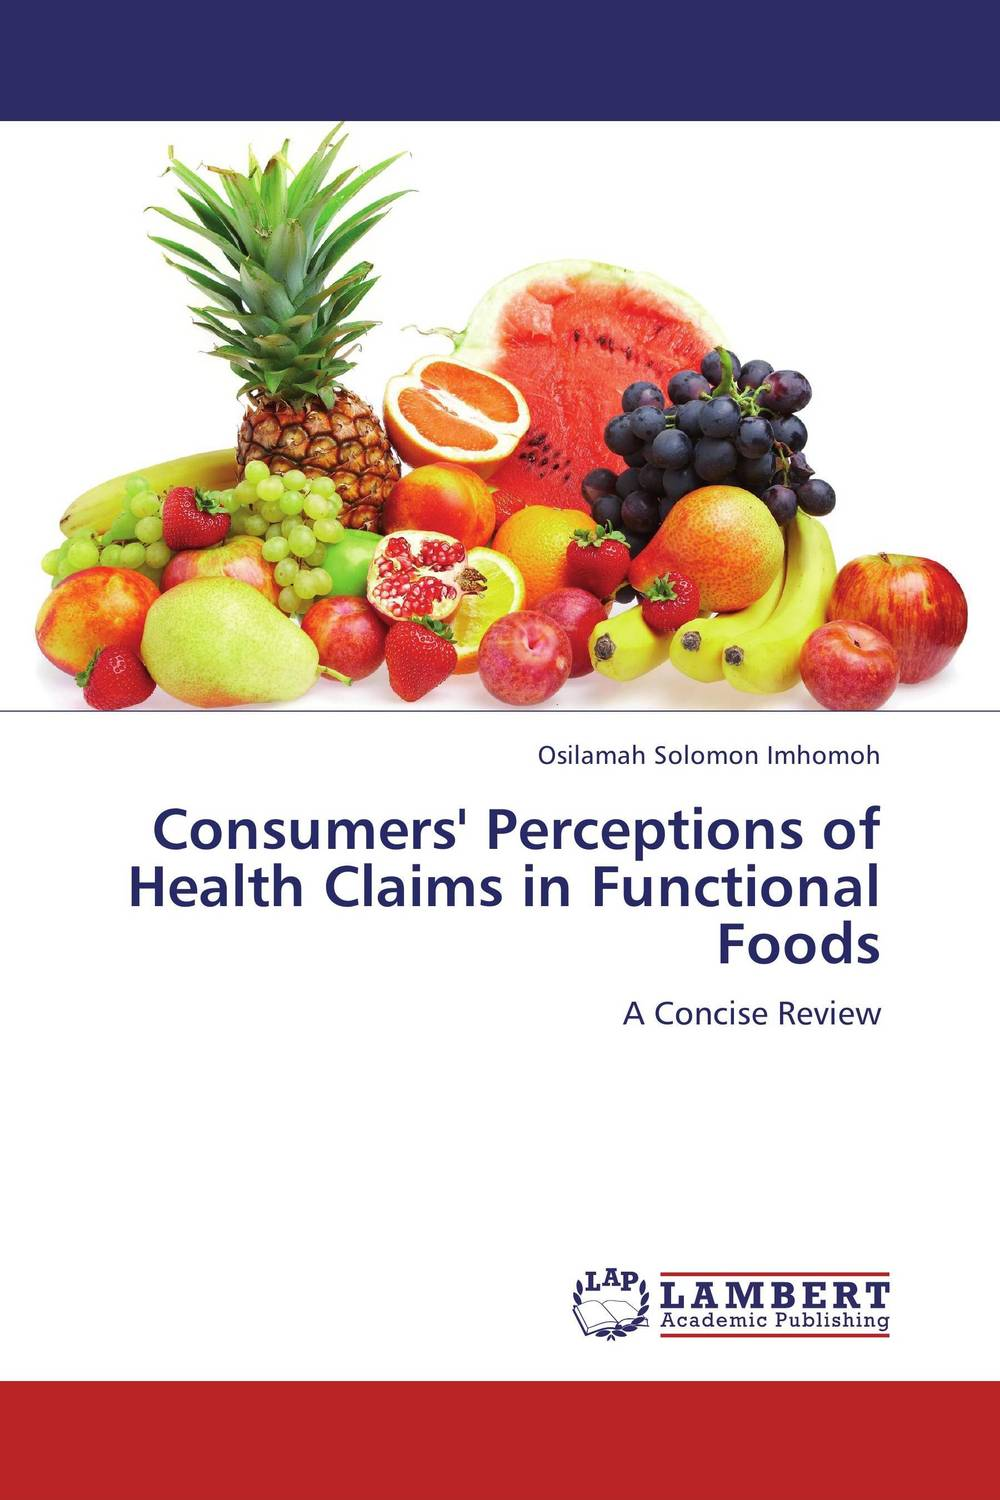 Consumers' Perceptions of Health Claims in Functional Foods